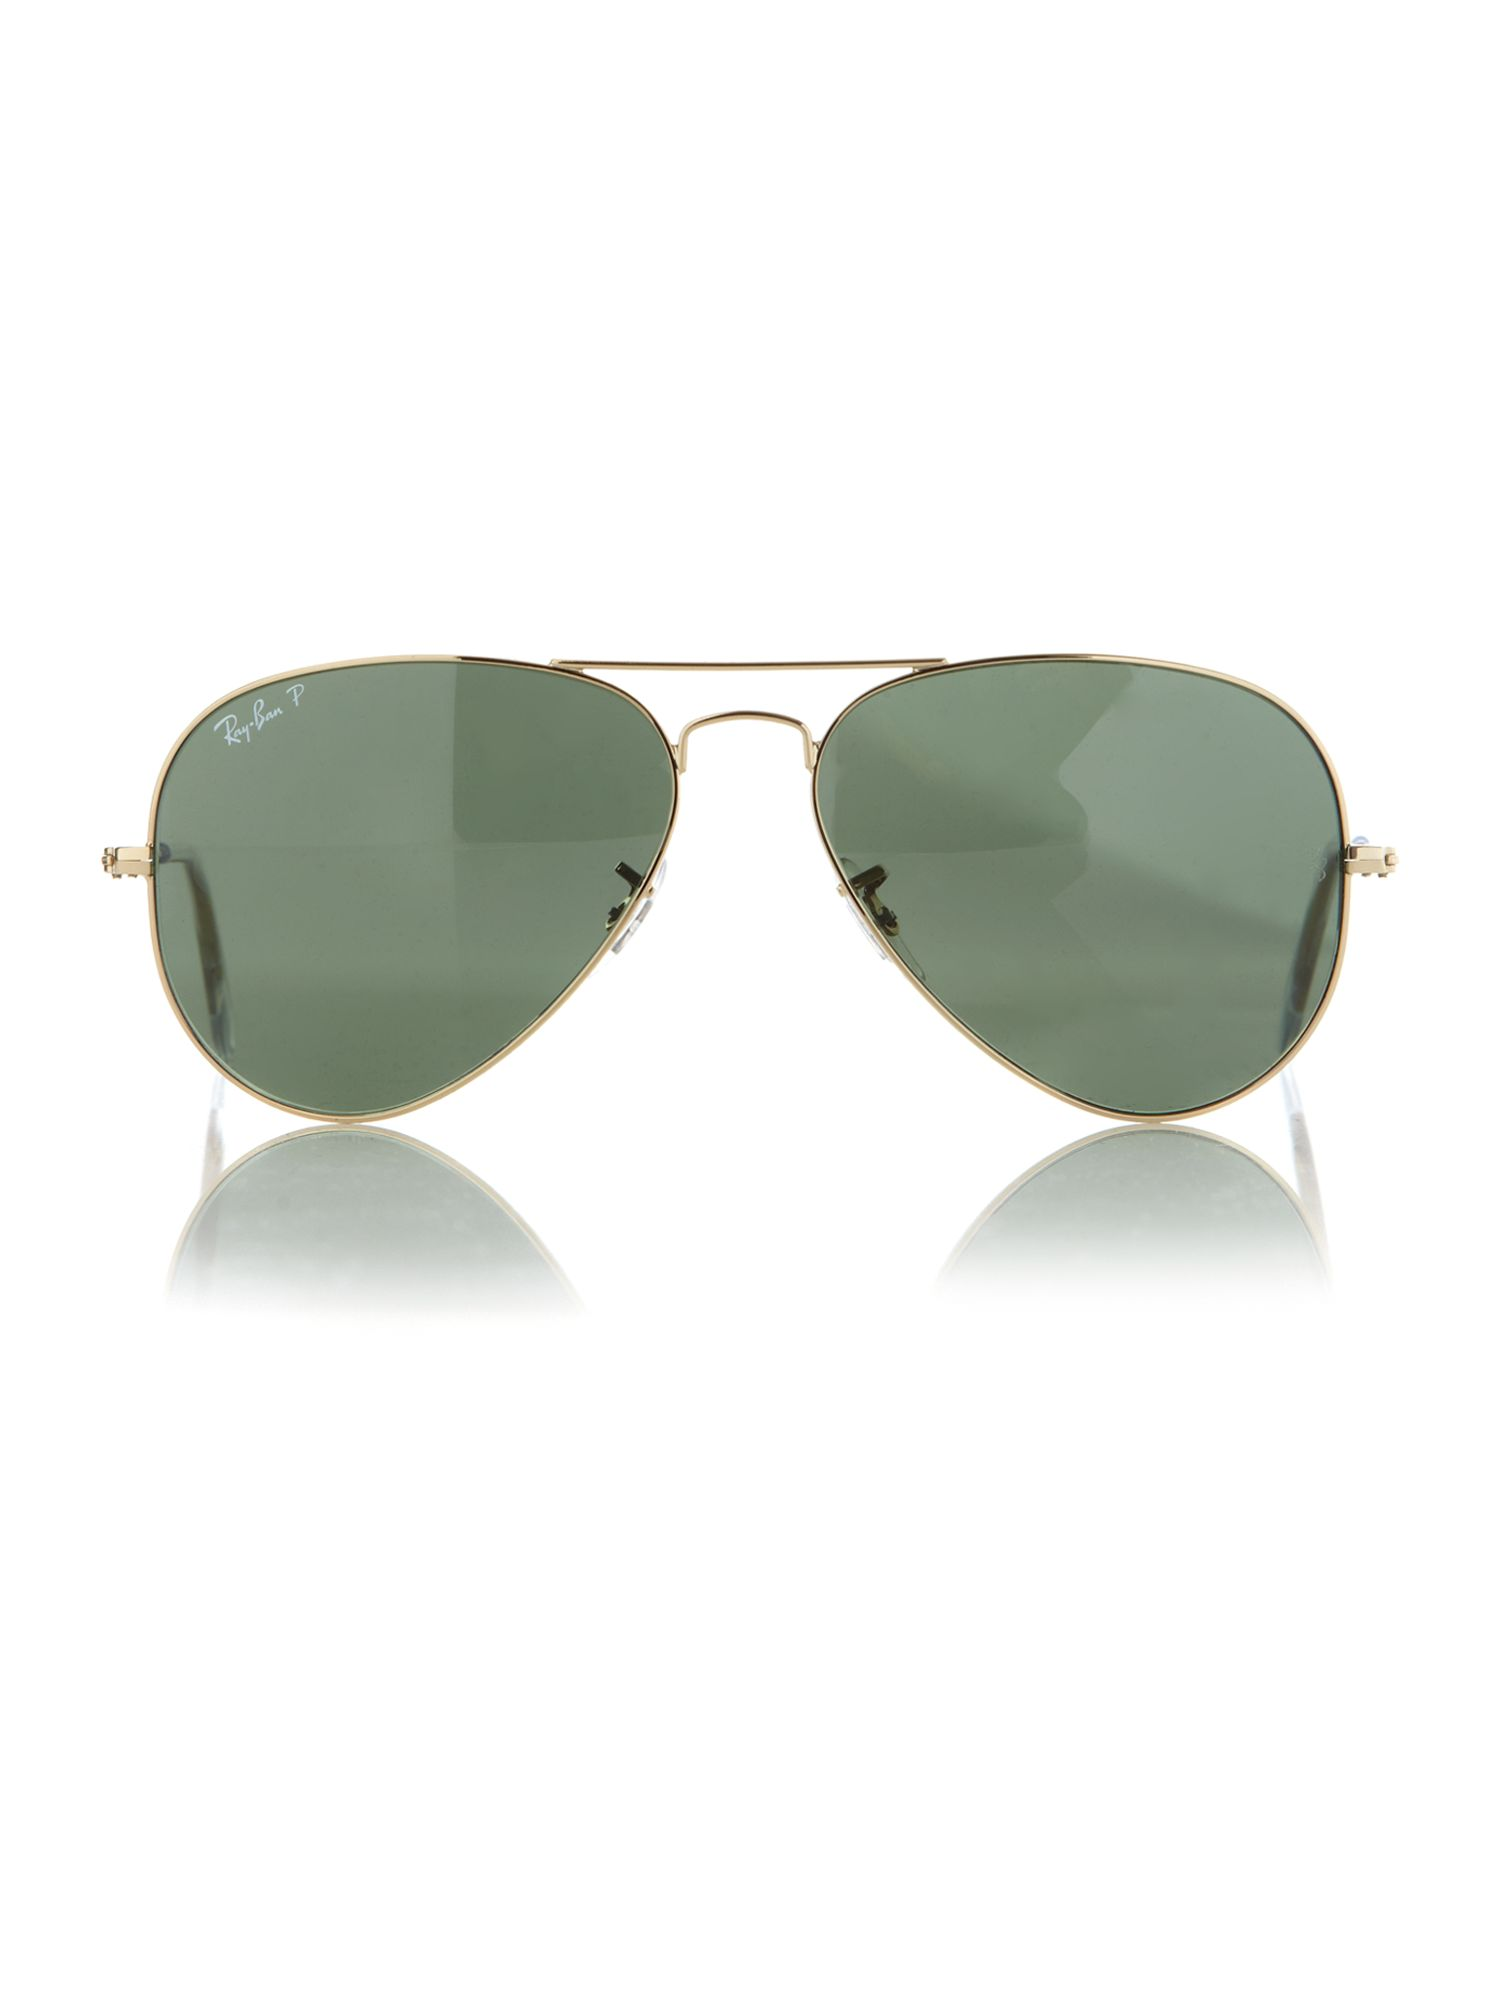 Unisex RB3025 001/58 L.Metal Aviator Sunglasses